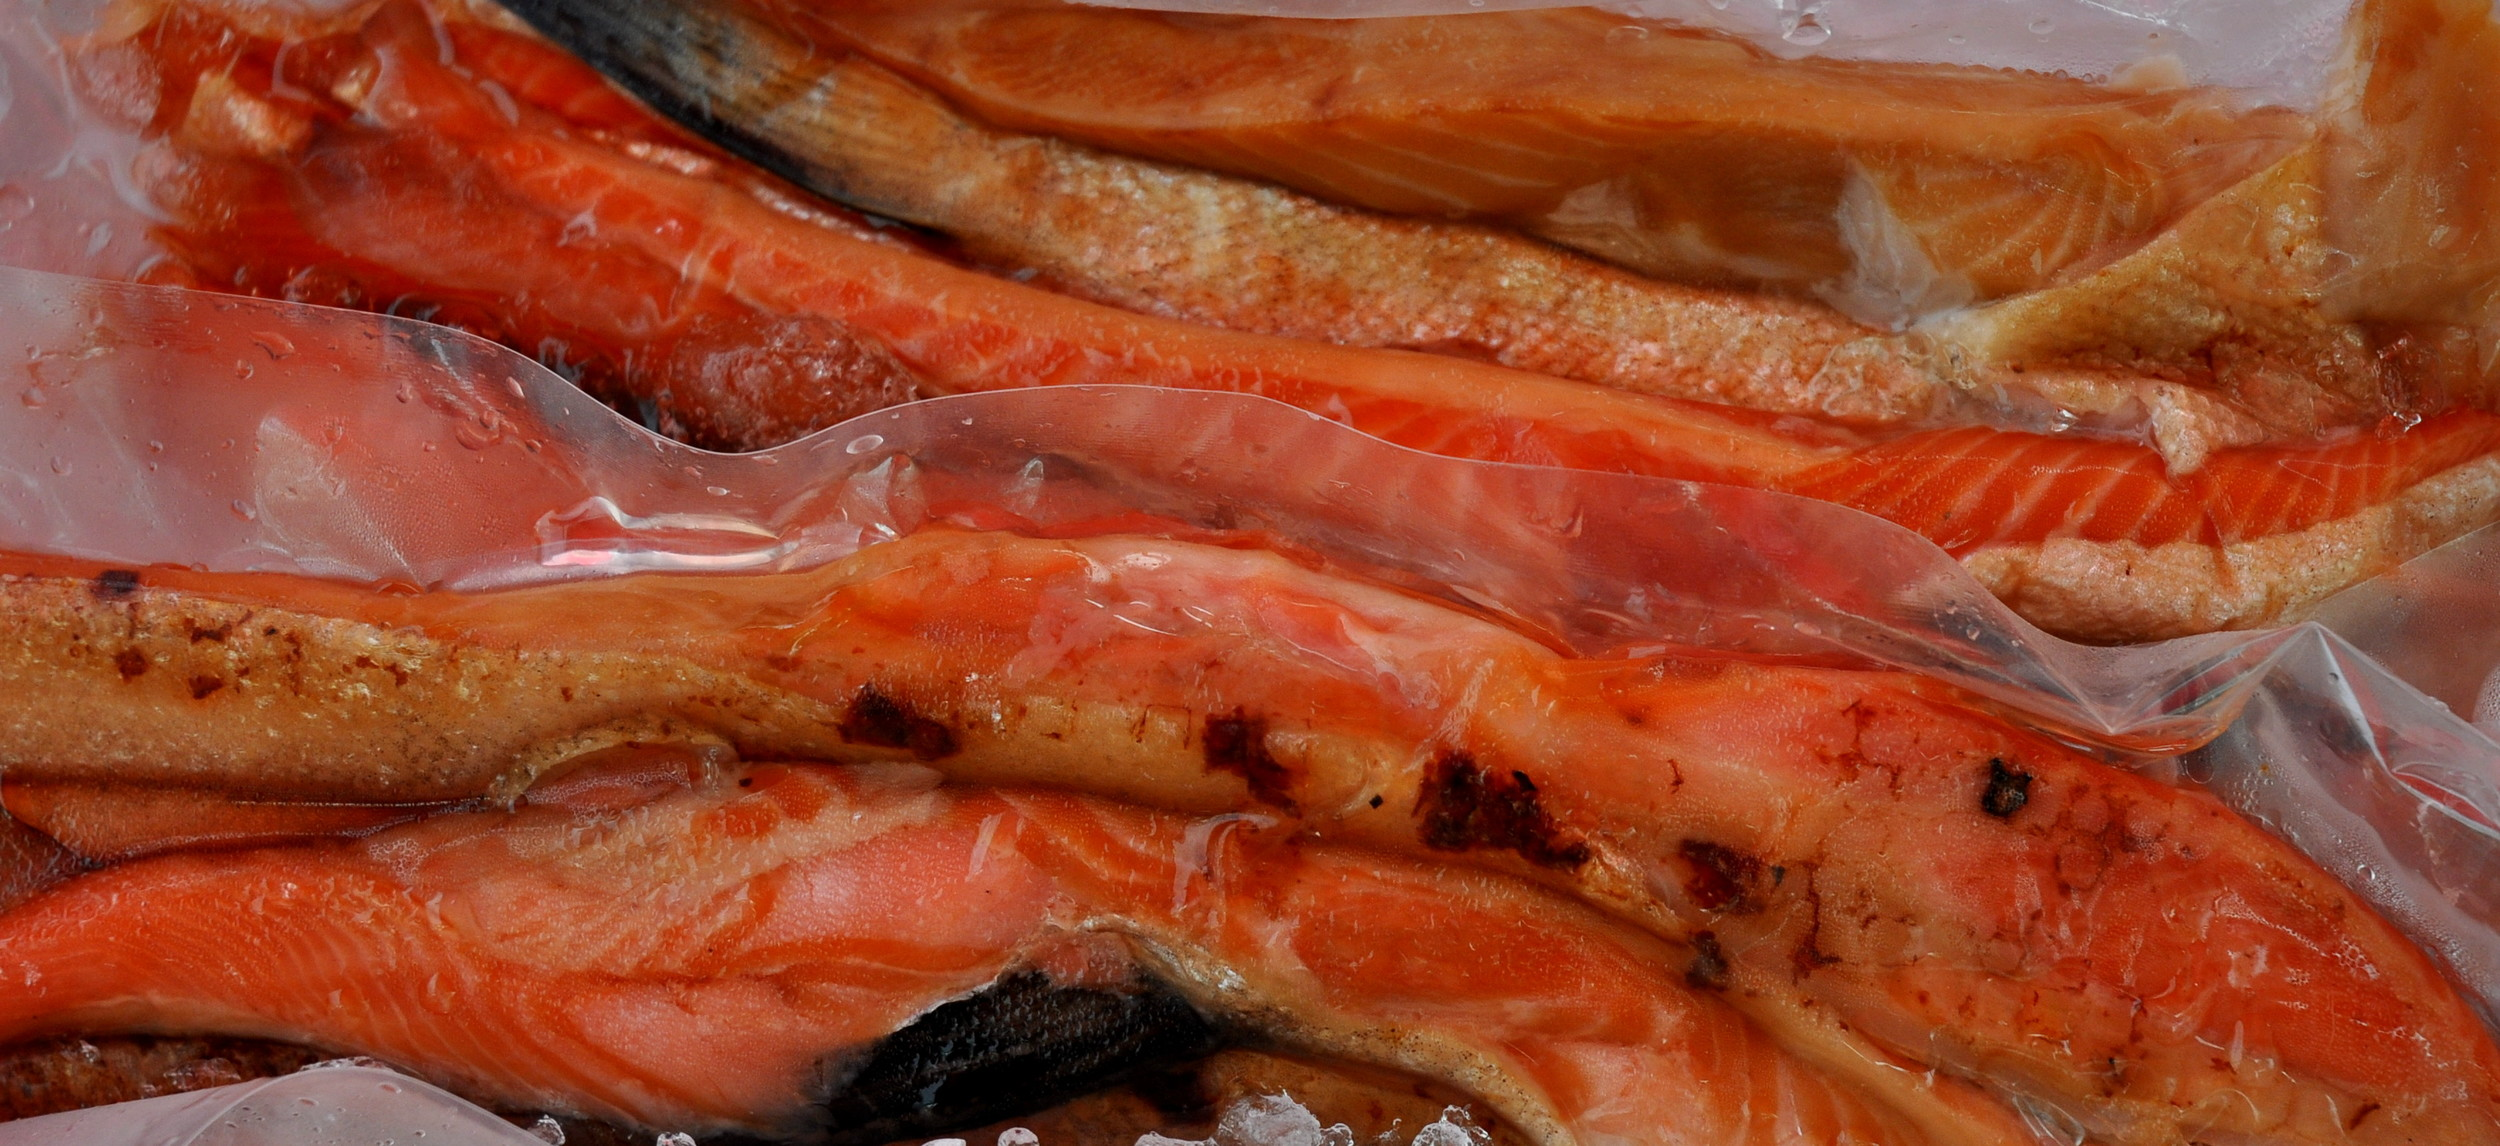 Smoked king salmon bellies from Loki Fish. Photo copyright 2013 by Zachary D. Lyons.